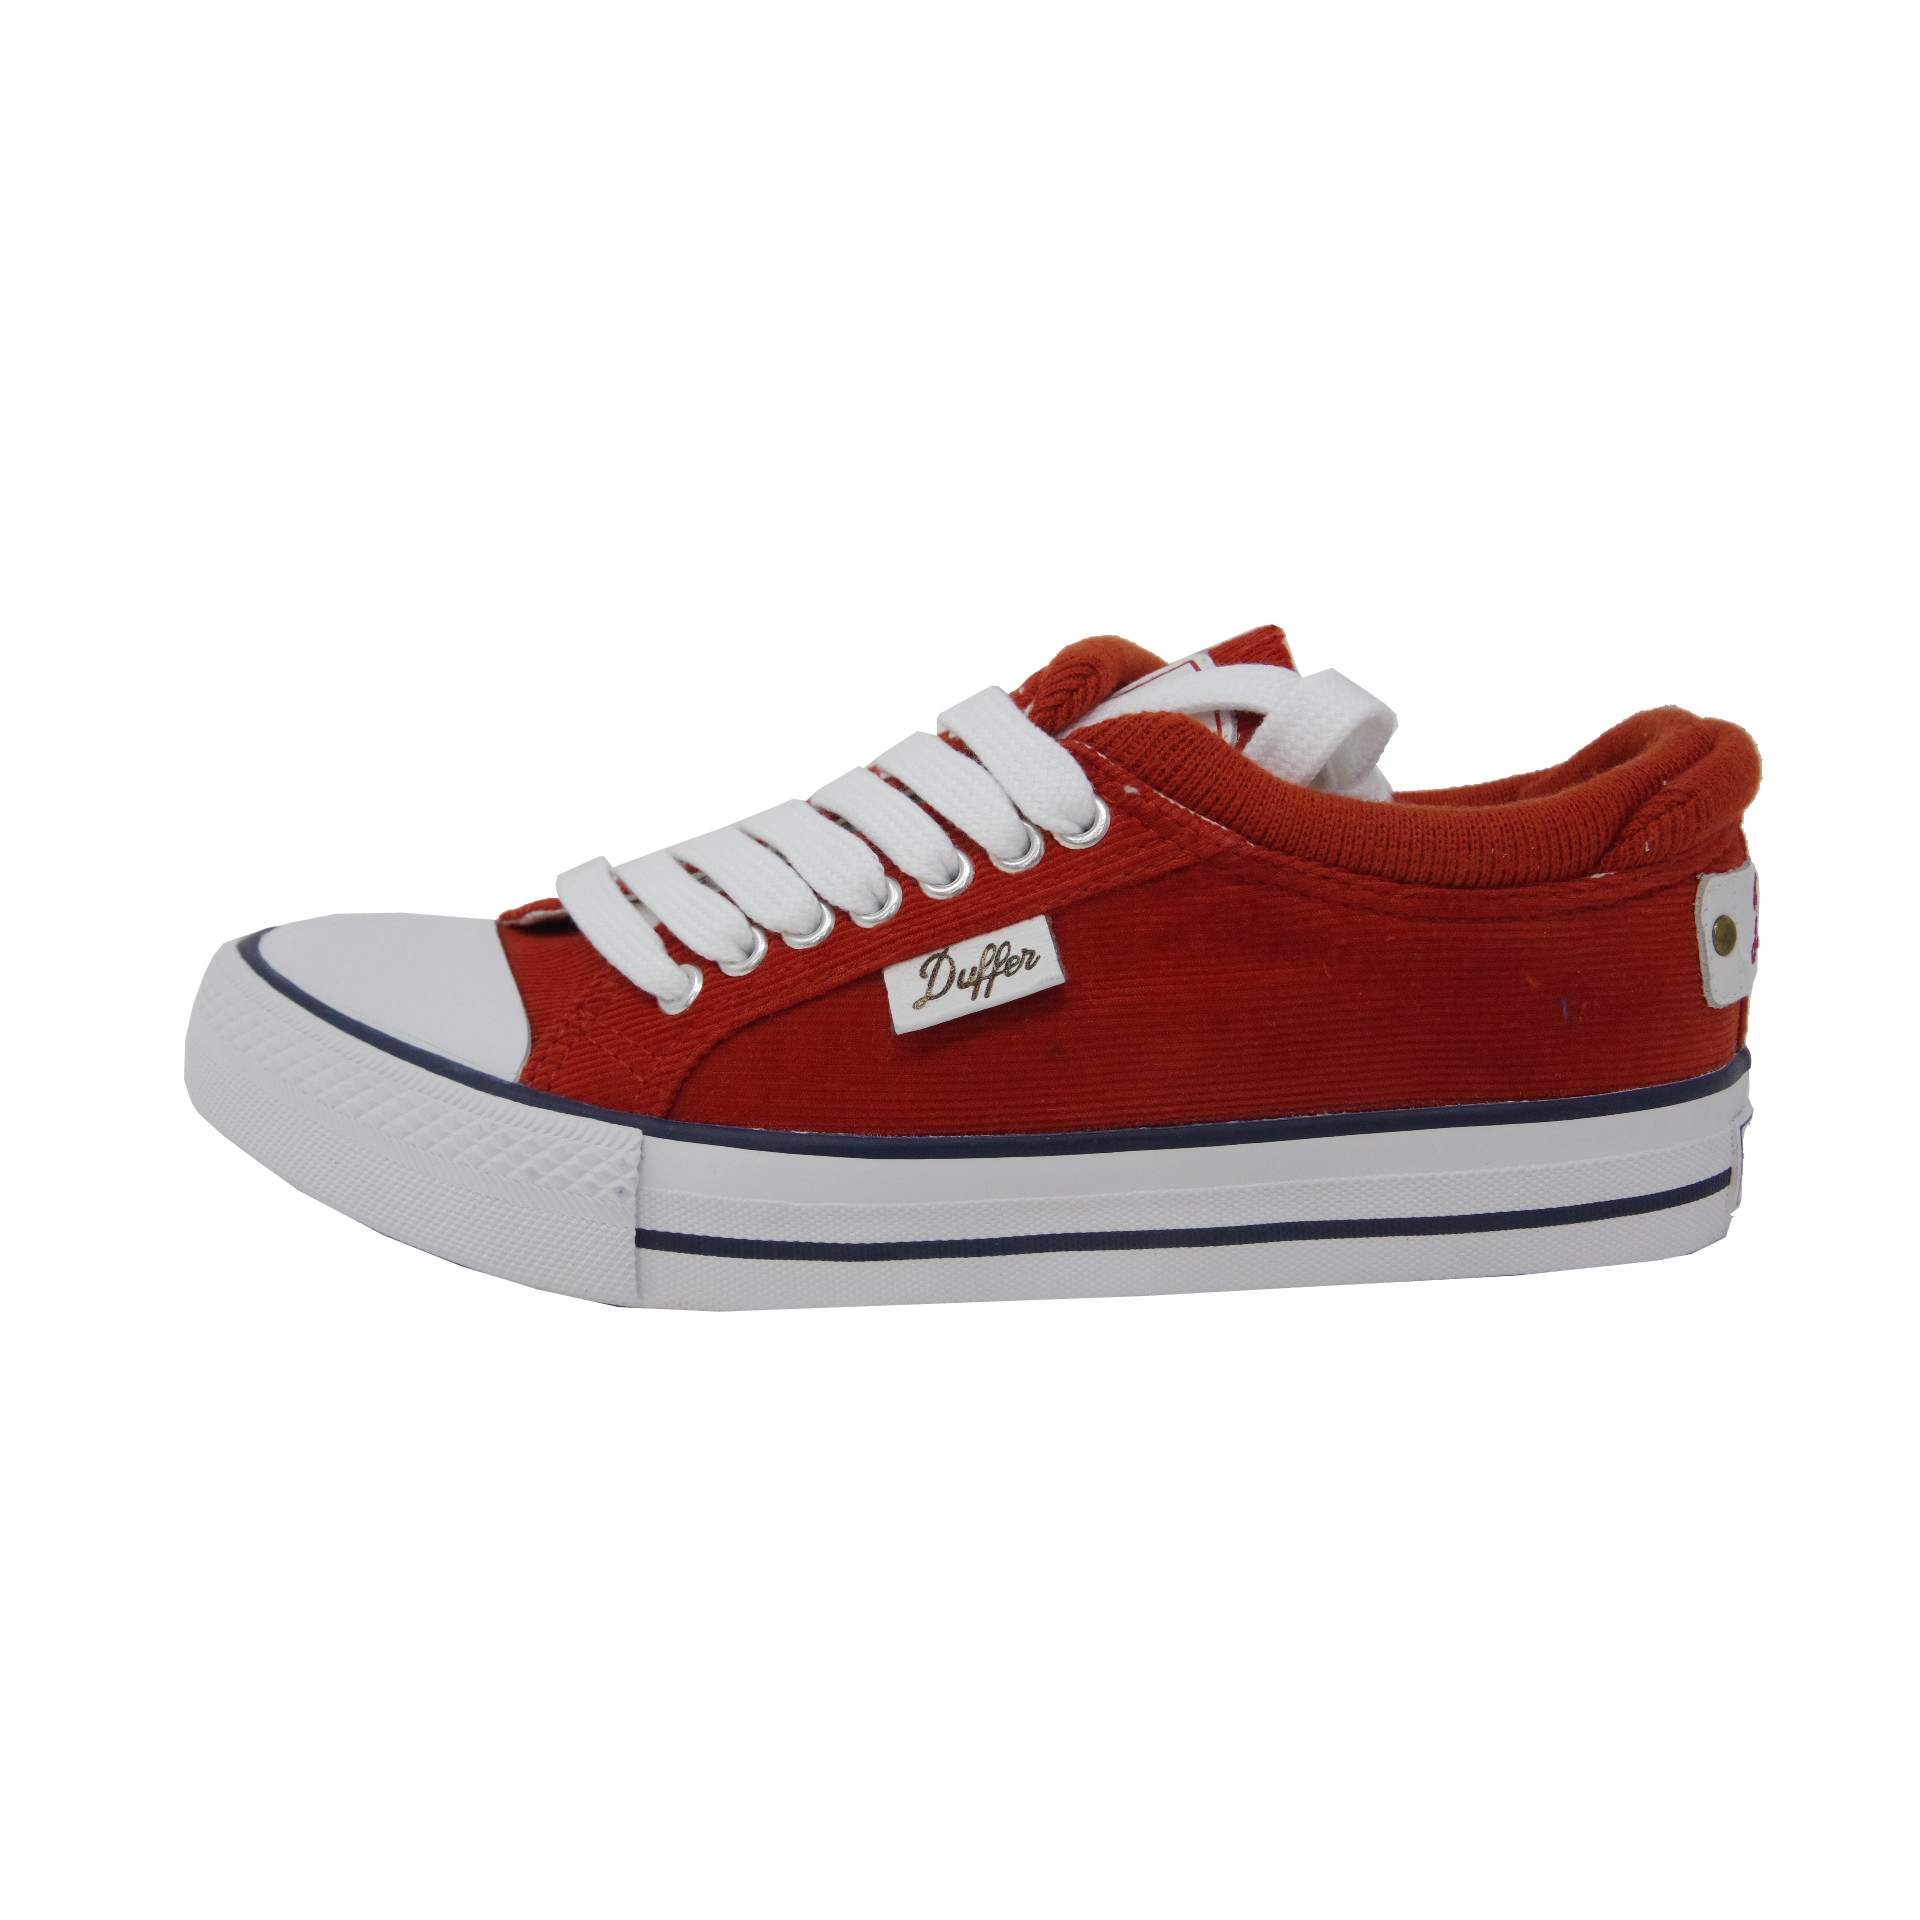 shop the duffer of st.george shoes